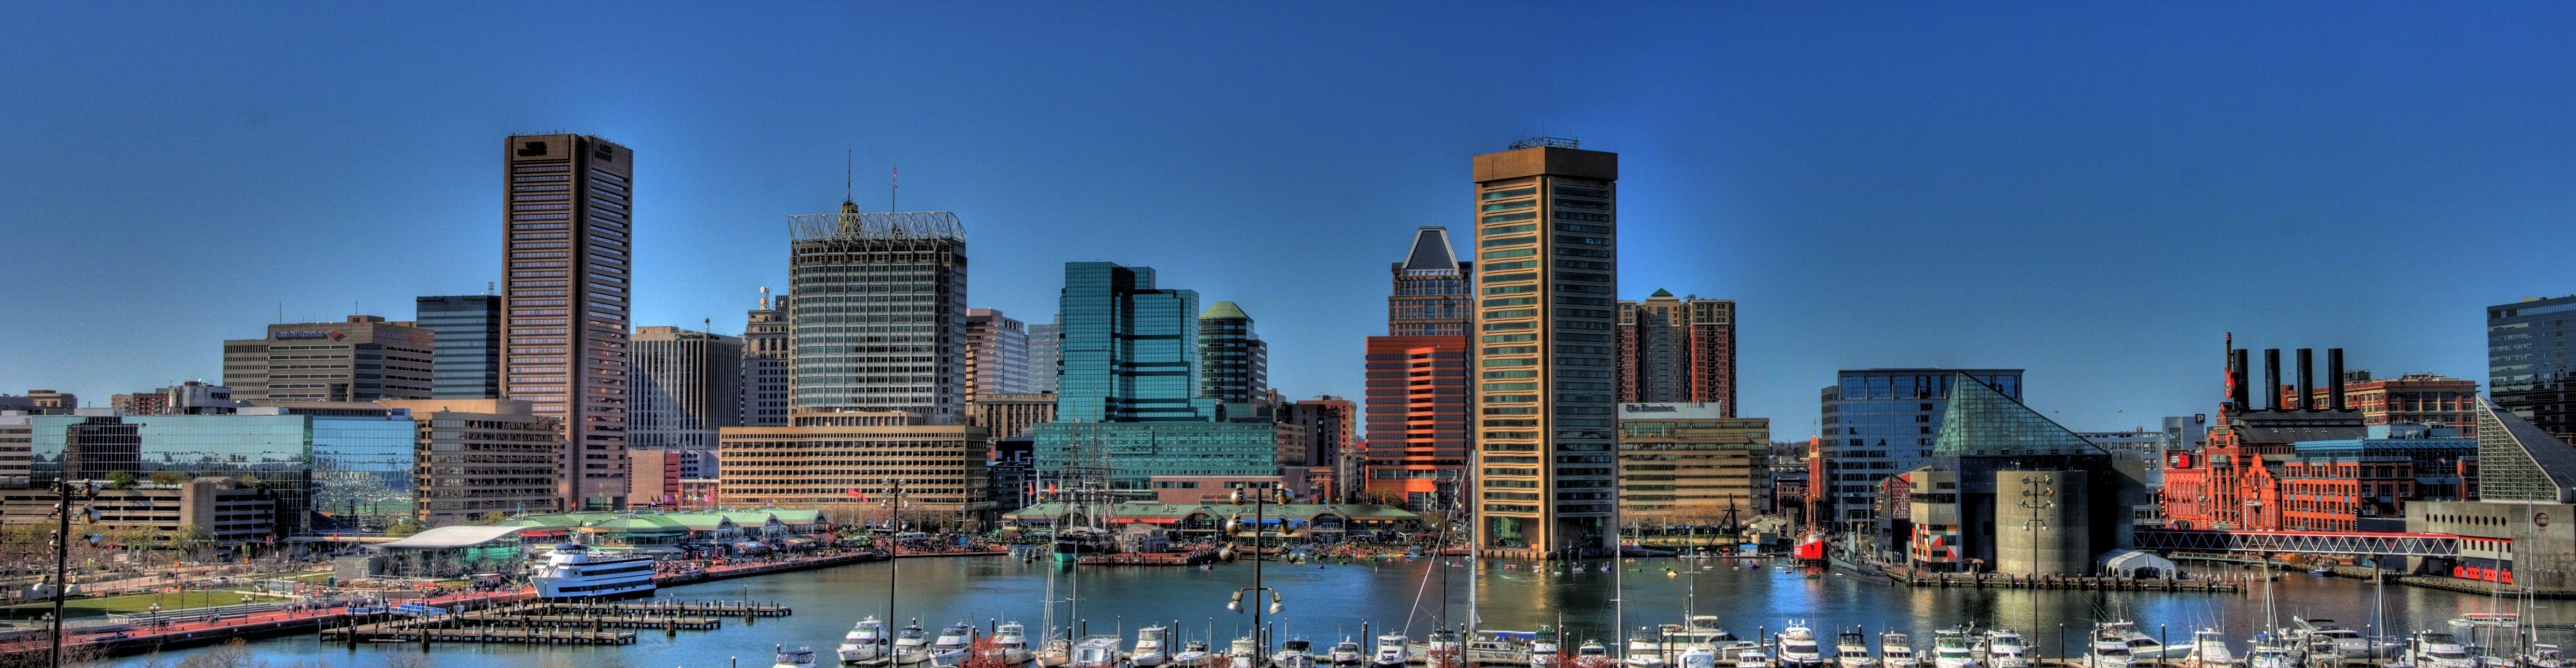 Baltimore City Wallpaper - WallpaperSafari